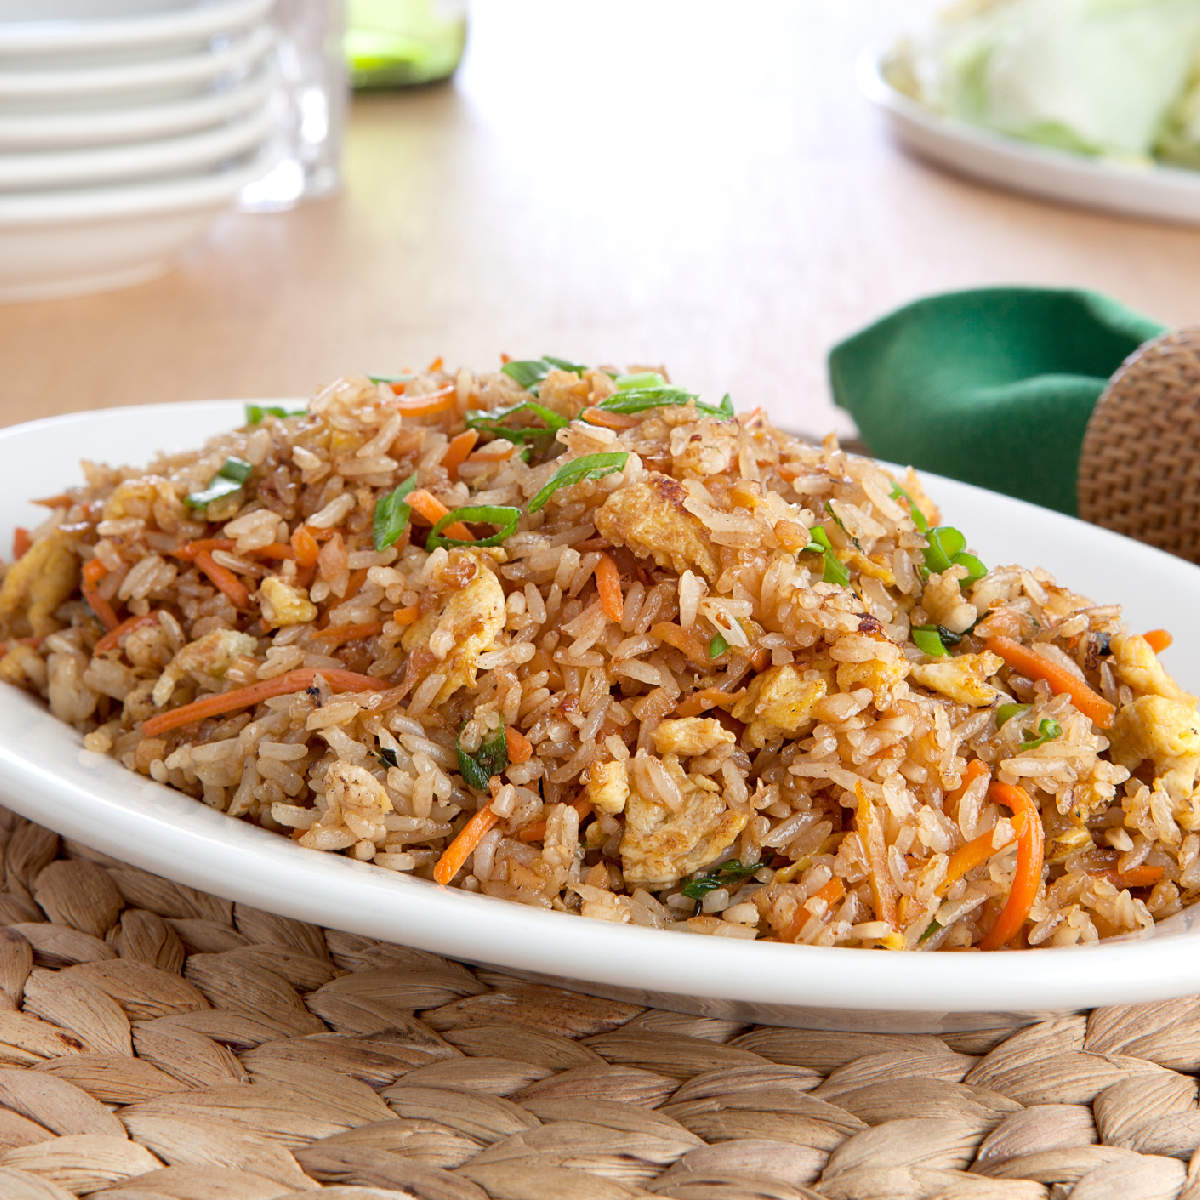 Chicken Fried Rice Recipe How To Make Chicken Fried Rice Recipe Homemade Chicken Fried Rice Recipe